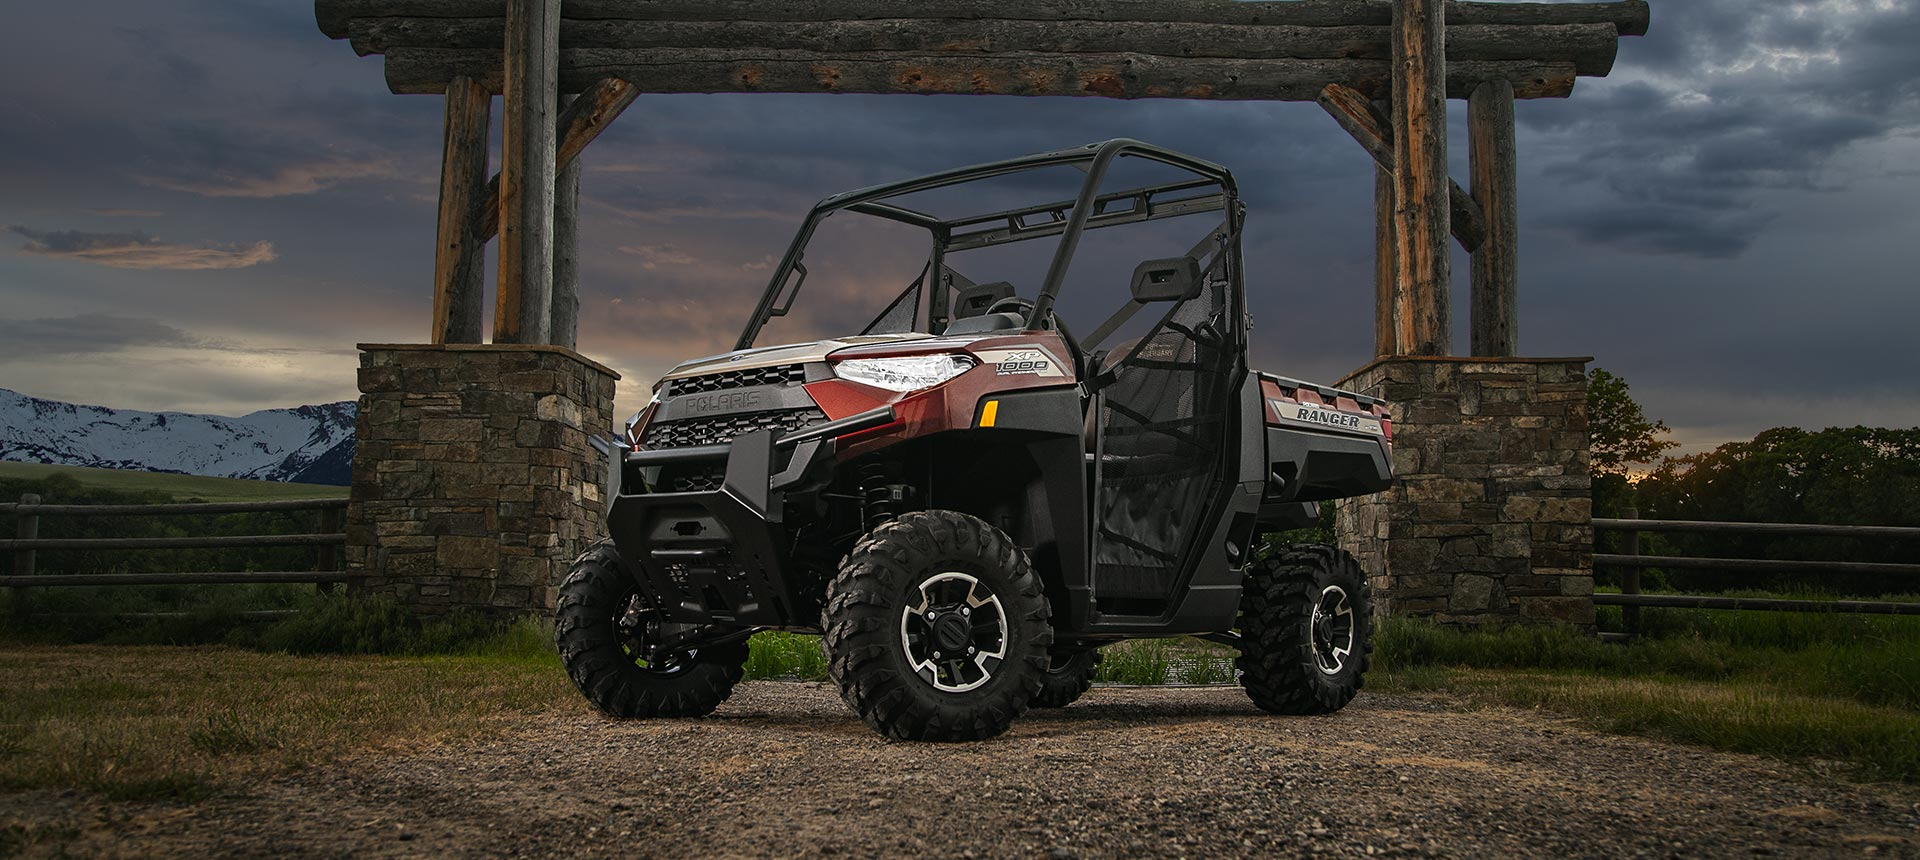 2019 Polaris Ranger XP 1000 EPS in Redding, California - Photo 8